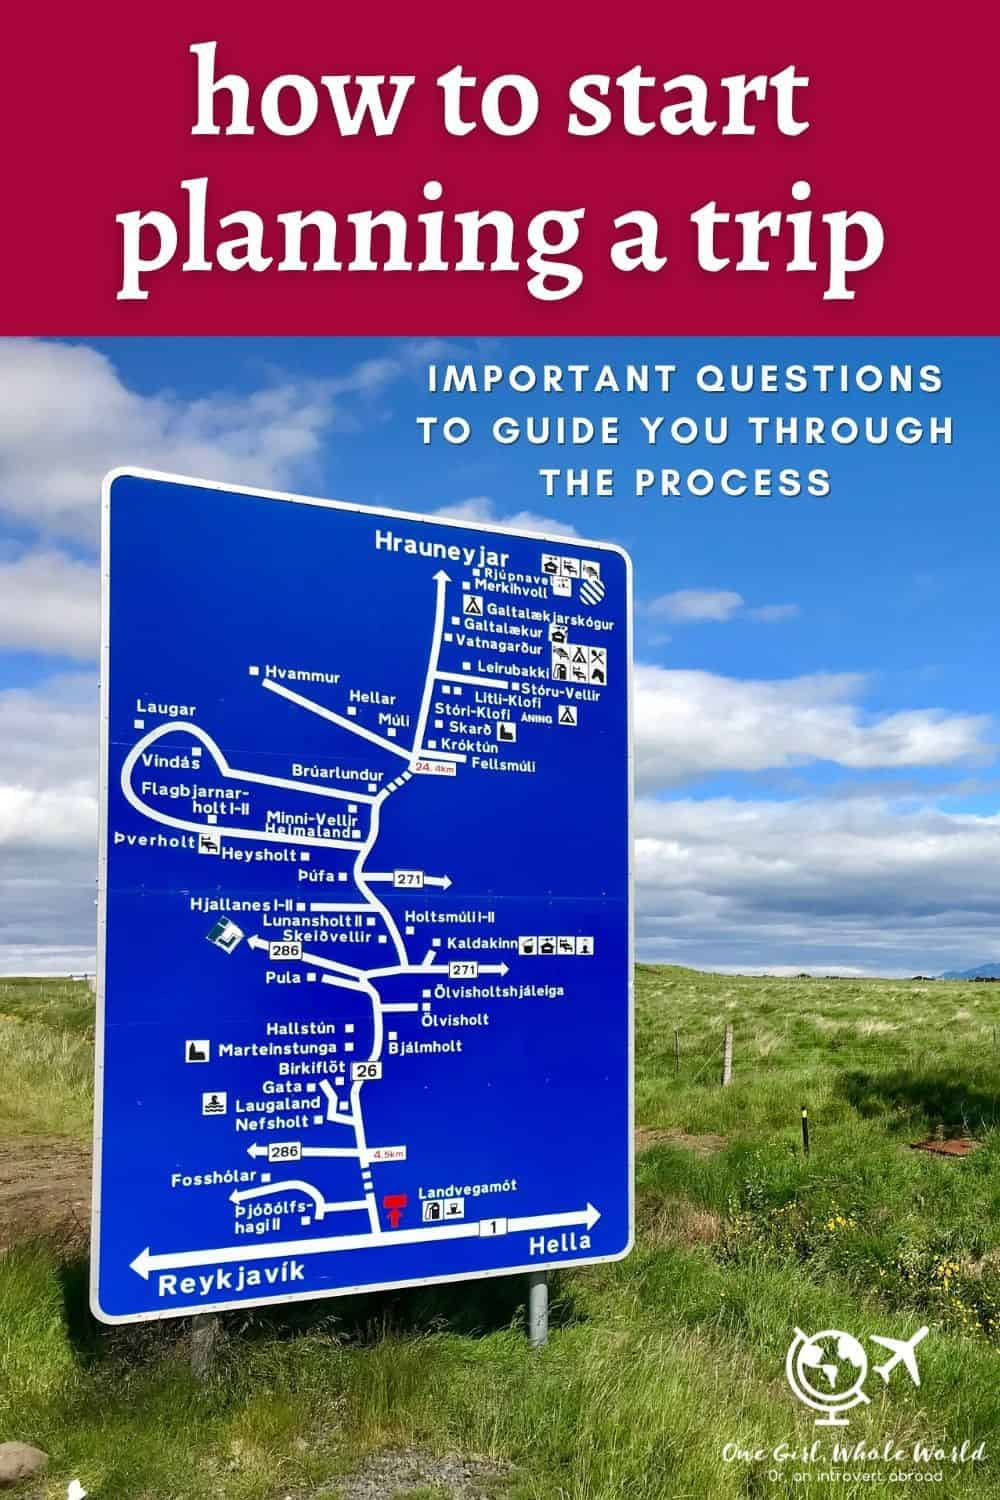 How to Plan a Trip: Important Questions to Help Guide You | If you're wondering how to plan a vacation or trip, these key questions will help inspire you and guide you through the process...from identifying your travel style, where to go, how flexible you are, and more. Trip planning tips and travel itinerary planning advice...how to start planning a trip now!